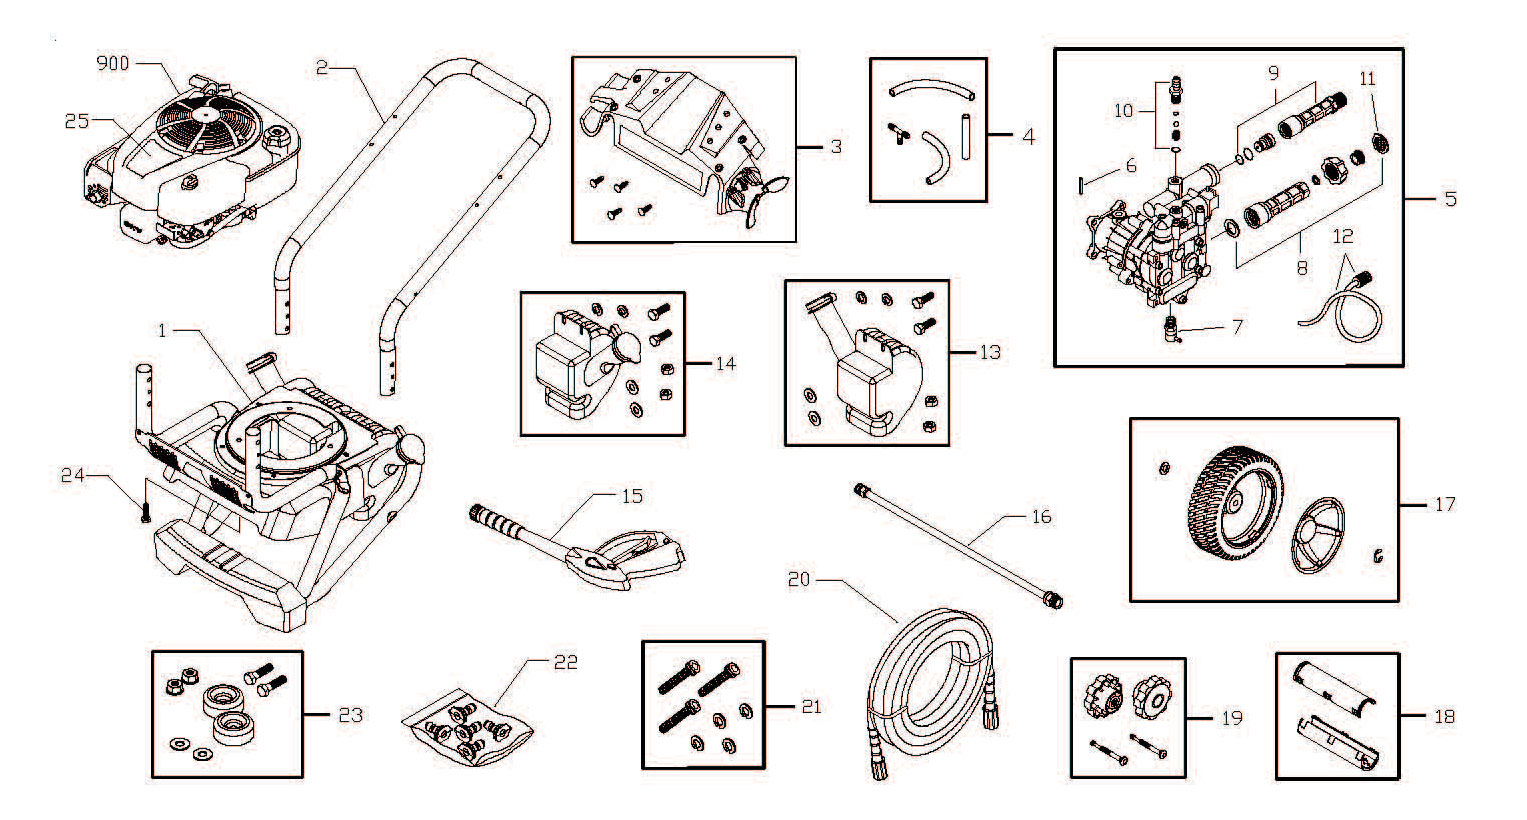 troy bilt pressure washer parts diagram home telephone wiring for a